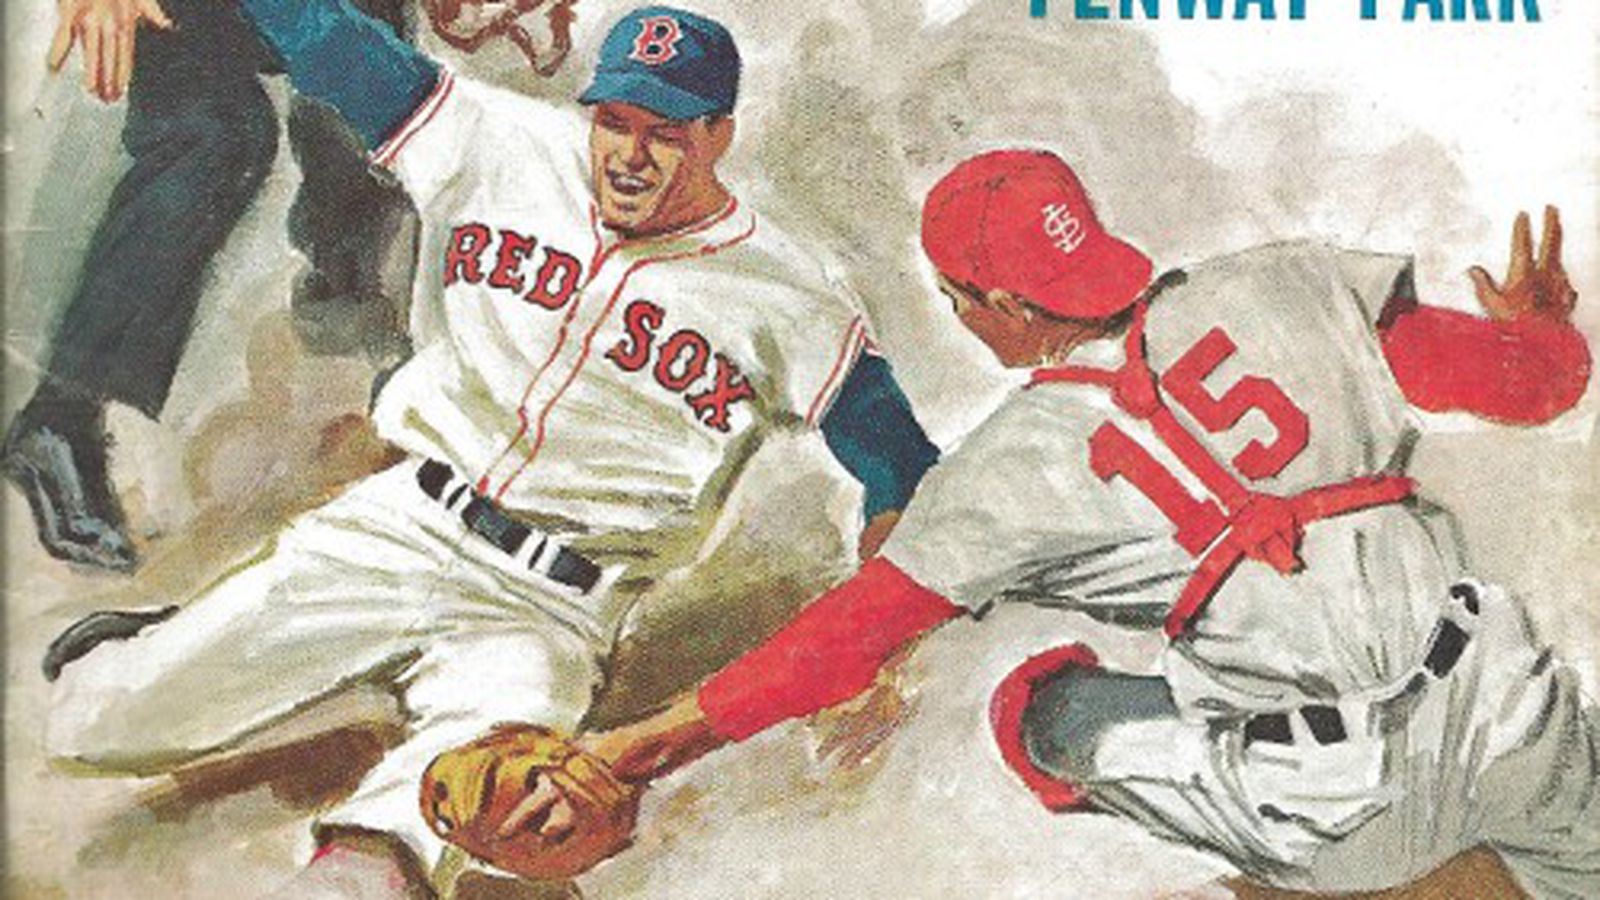 The 10 greatest World Series program covers